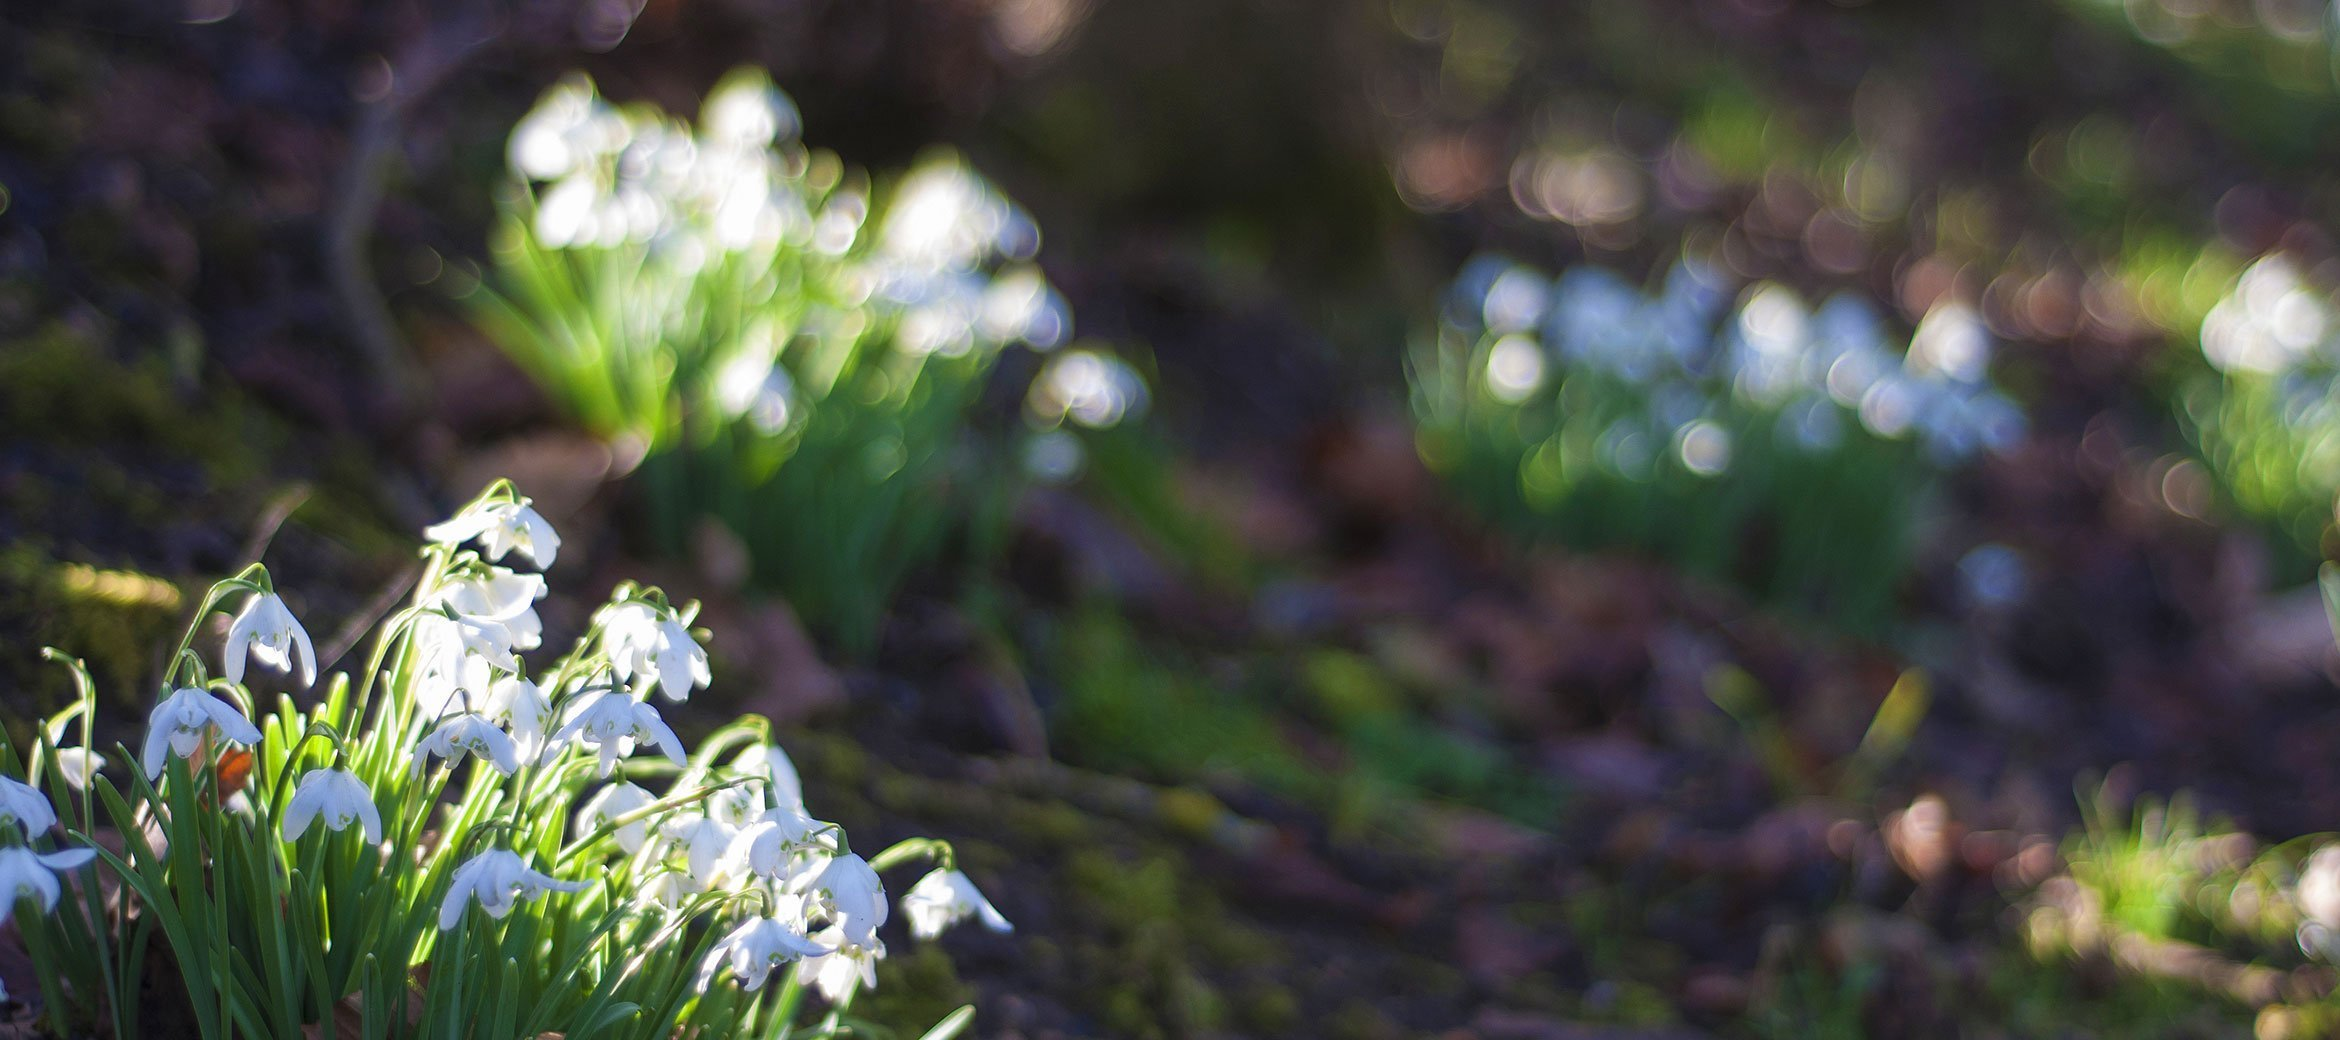 dryhill-cotswold-cottage-snowdrops